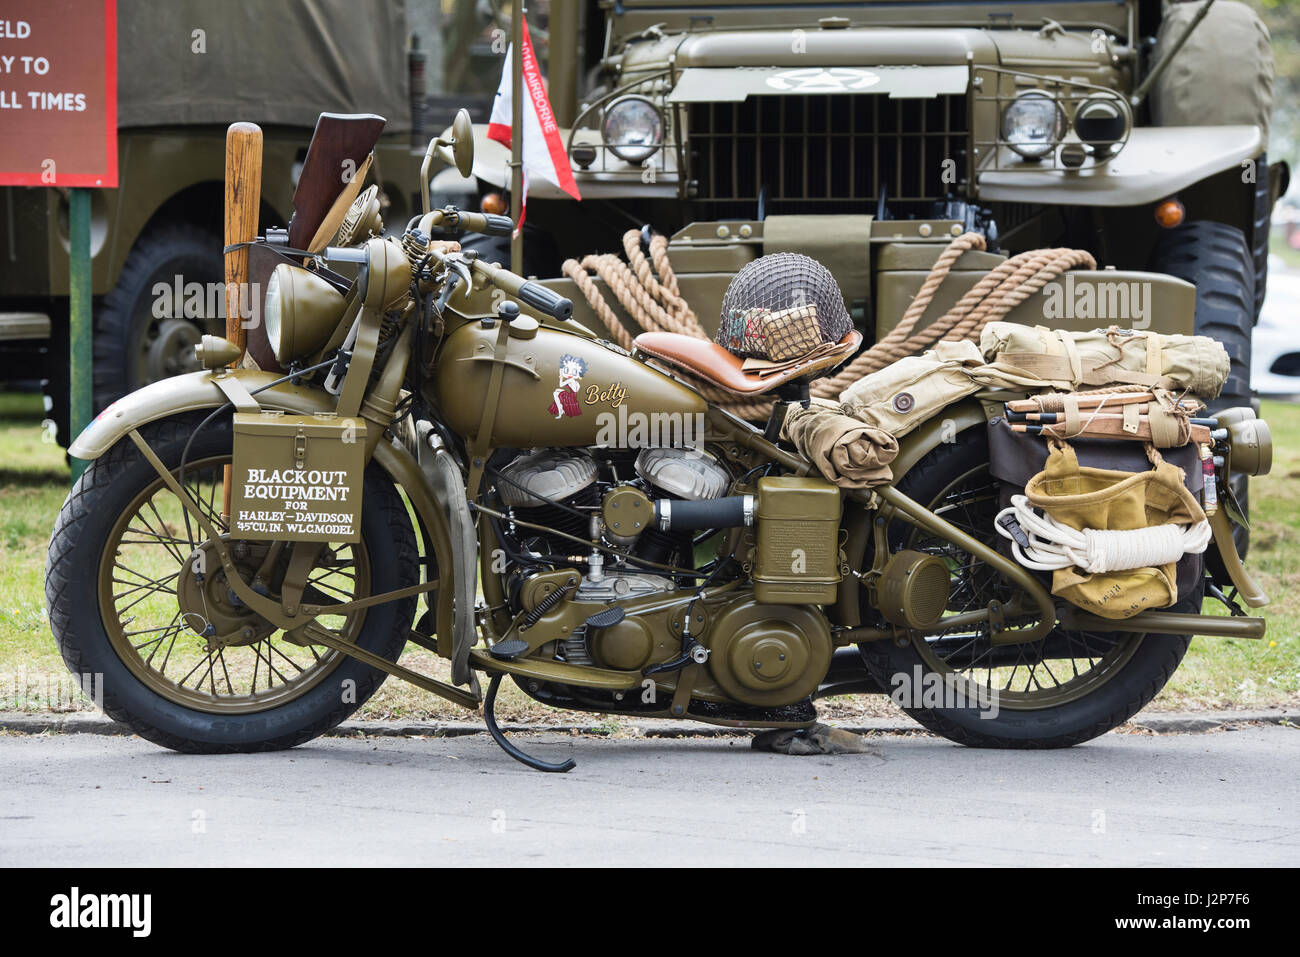 Vintage Army Motorcycle High Resolution Stock Photography And Images Alamy